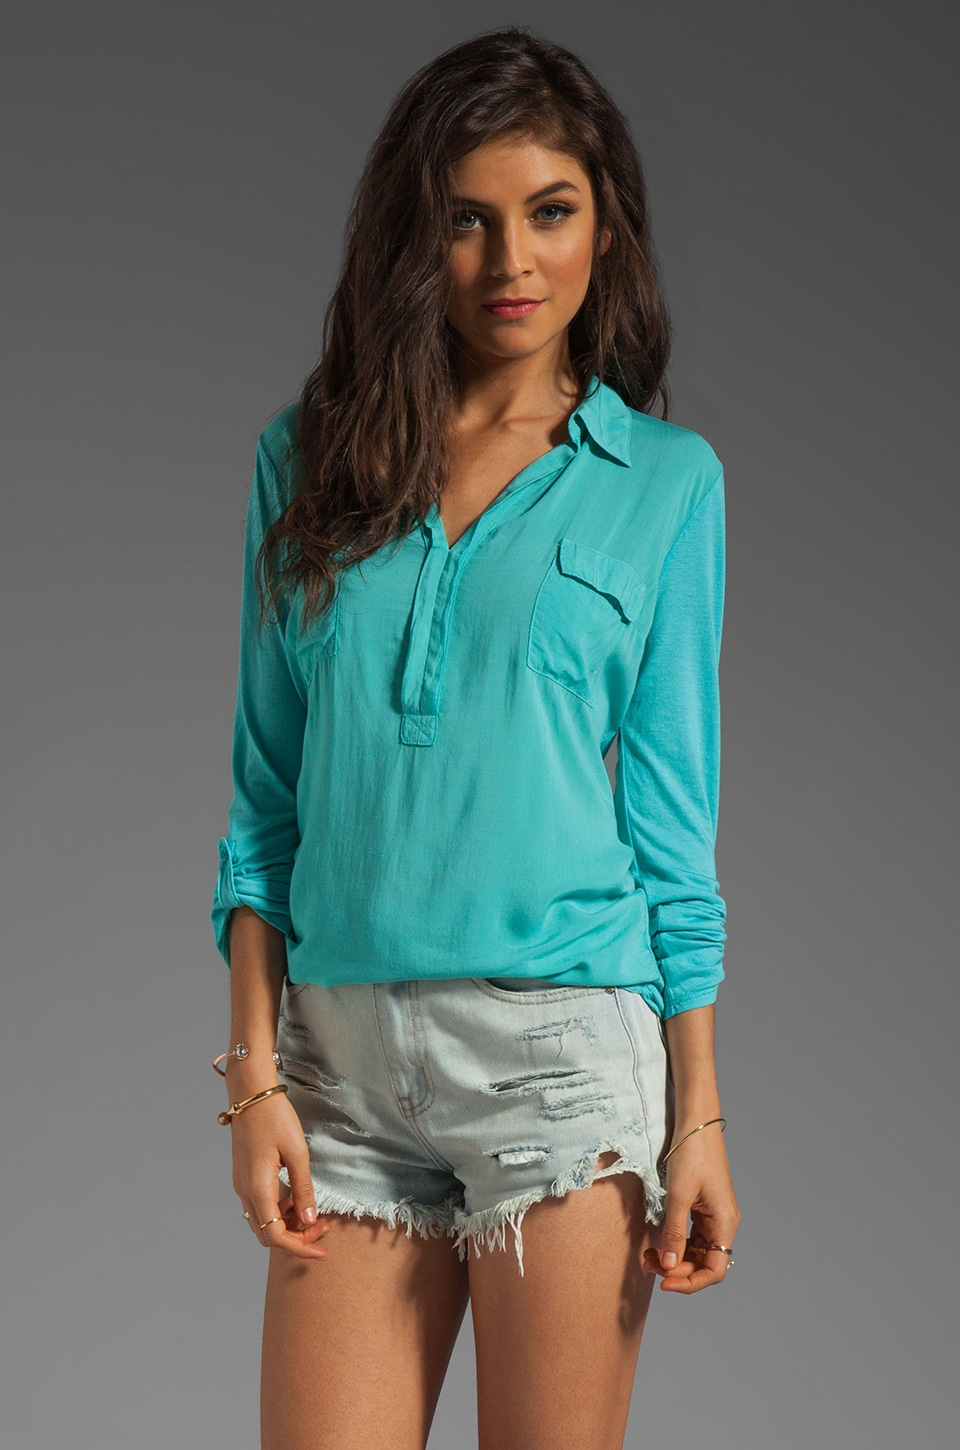 Splendid Shirting Collar Top in Waterfall